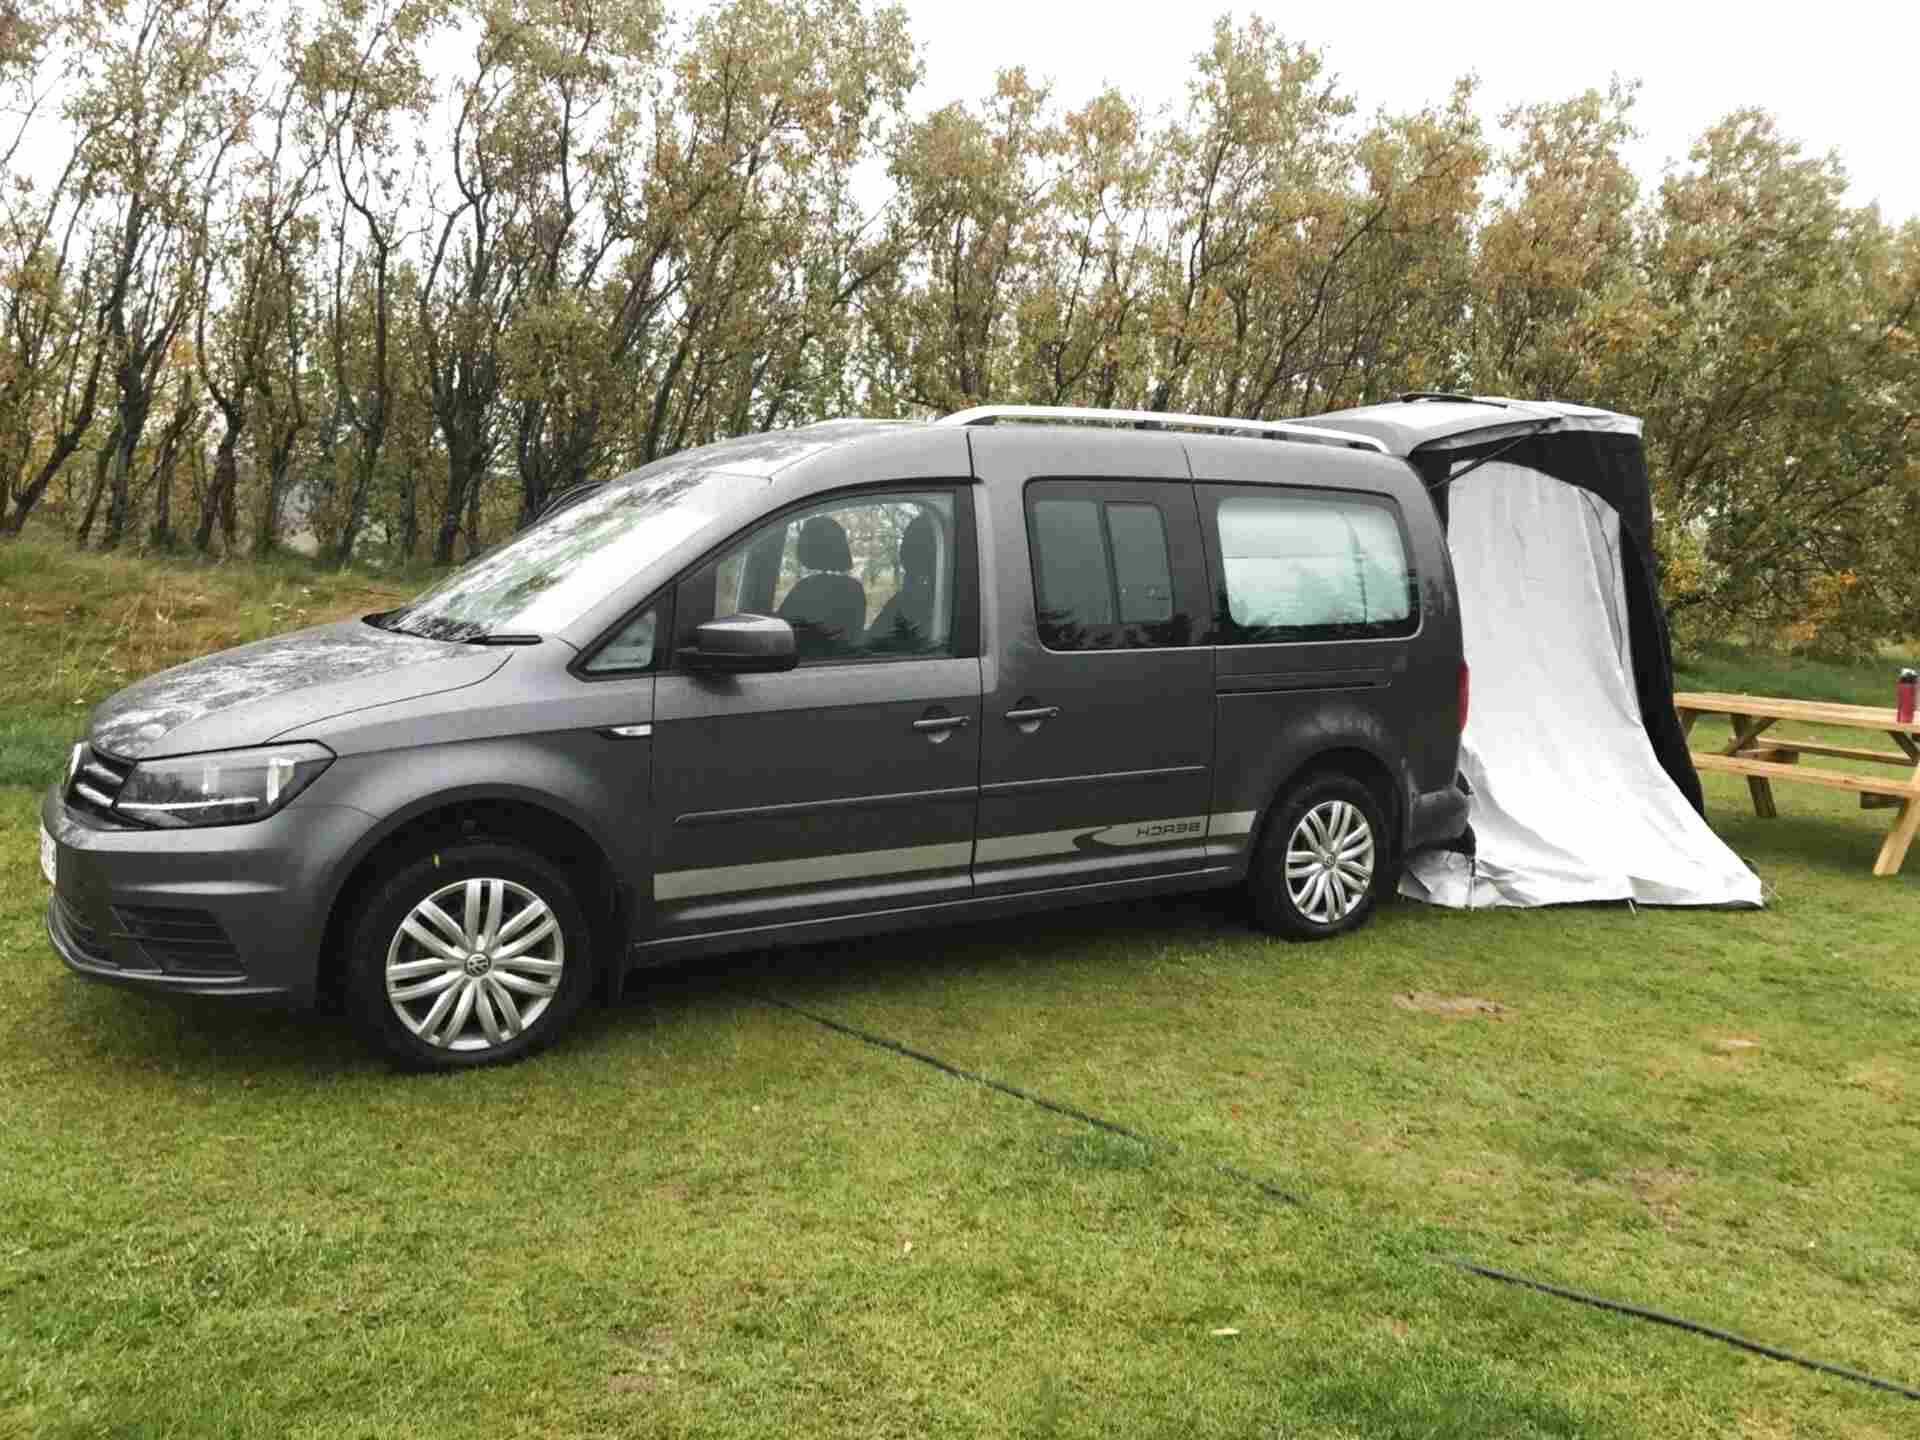 Vw Caddy Camper for sale in UK | 38 used Vw Caddy Campers